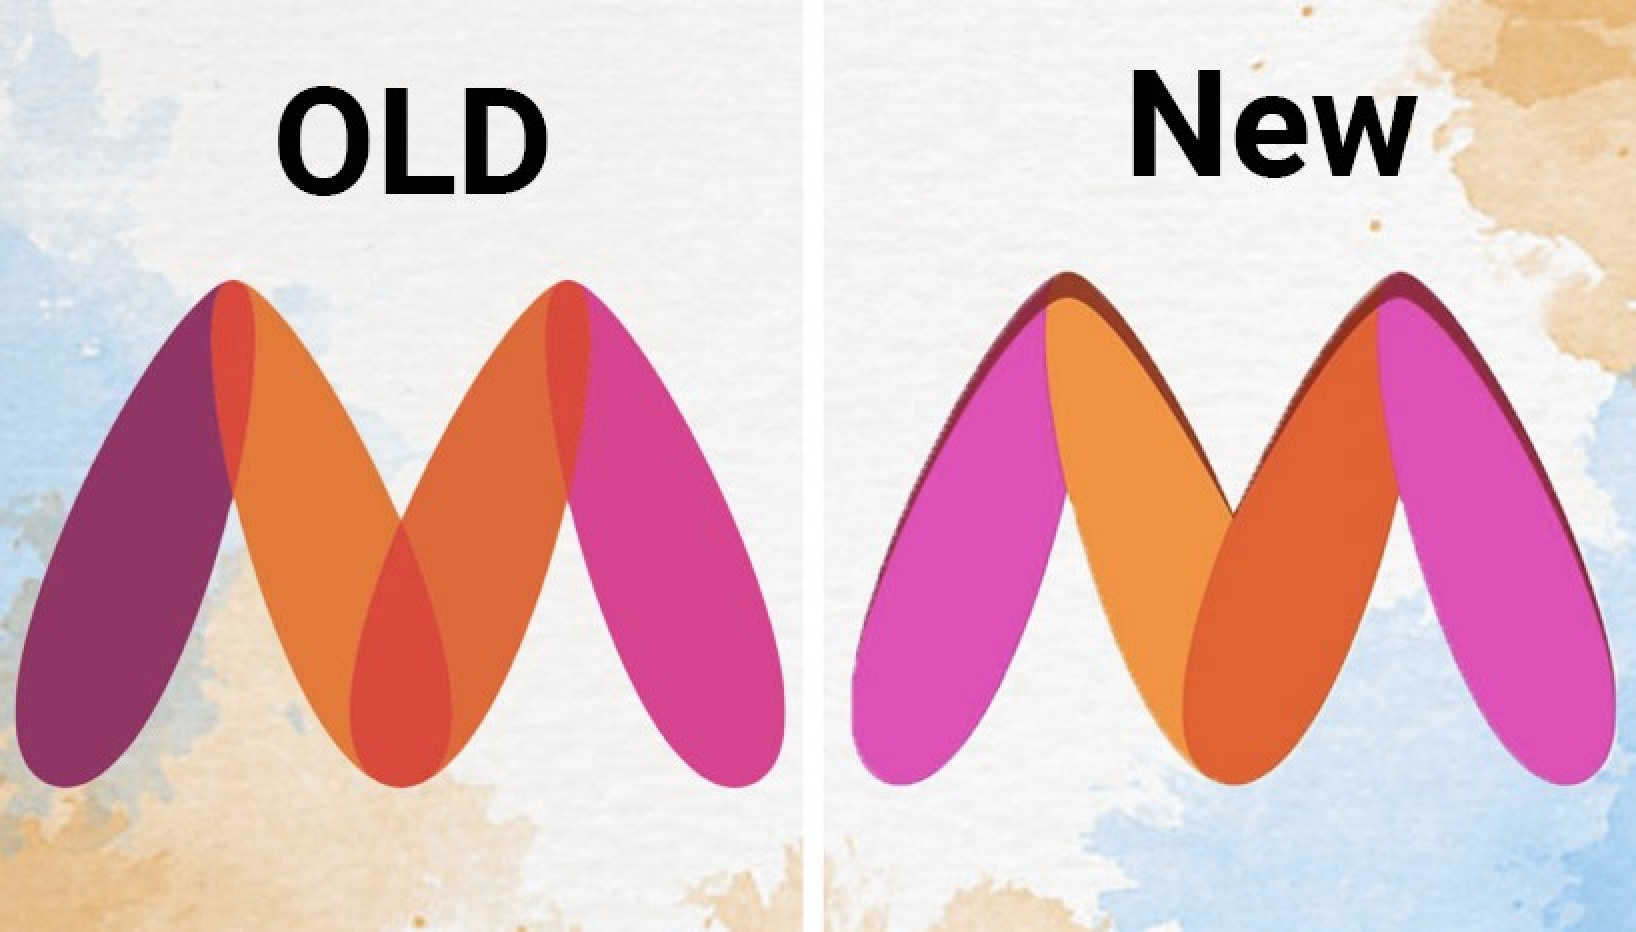 Myntra Forced To Modify Logo After Embarrassing Scandal; Memes Ensue